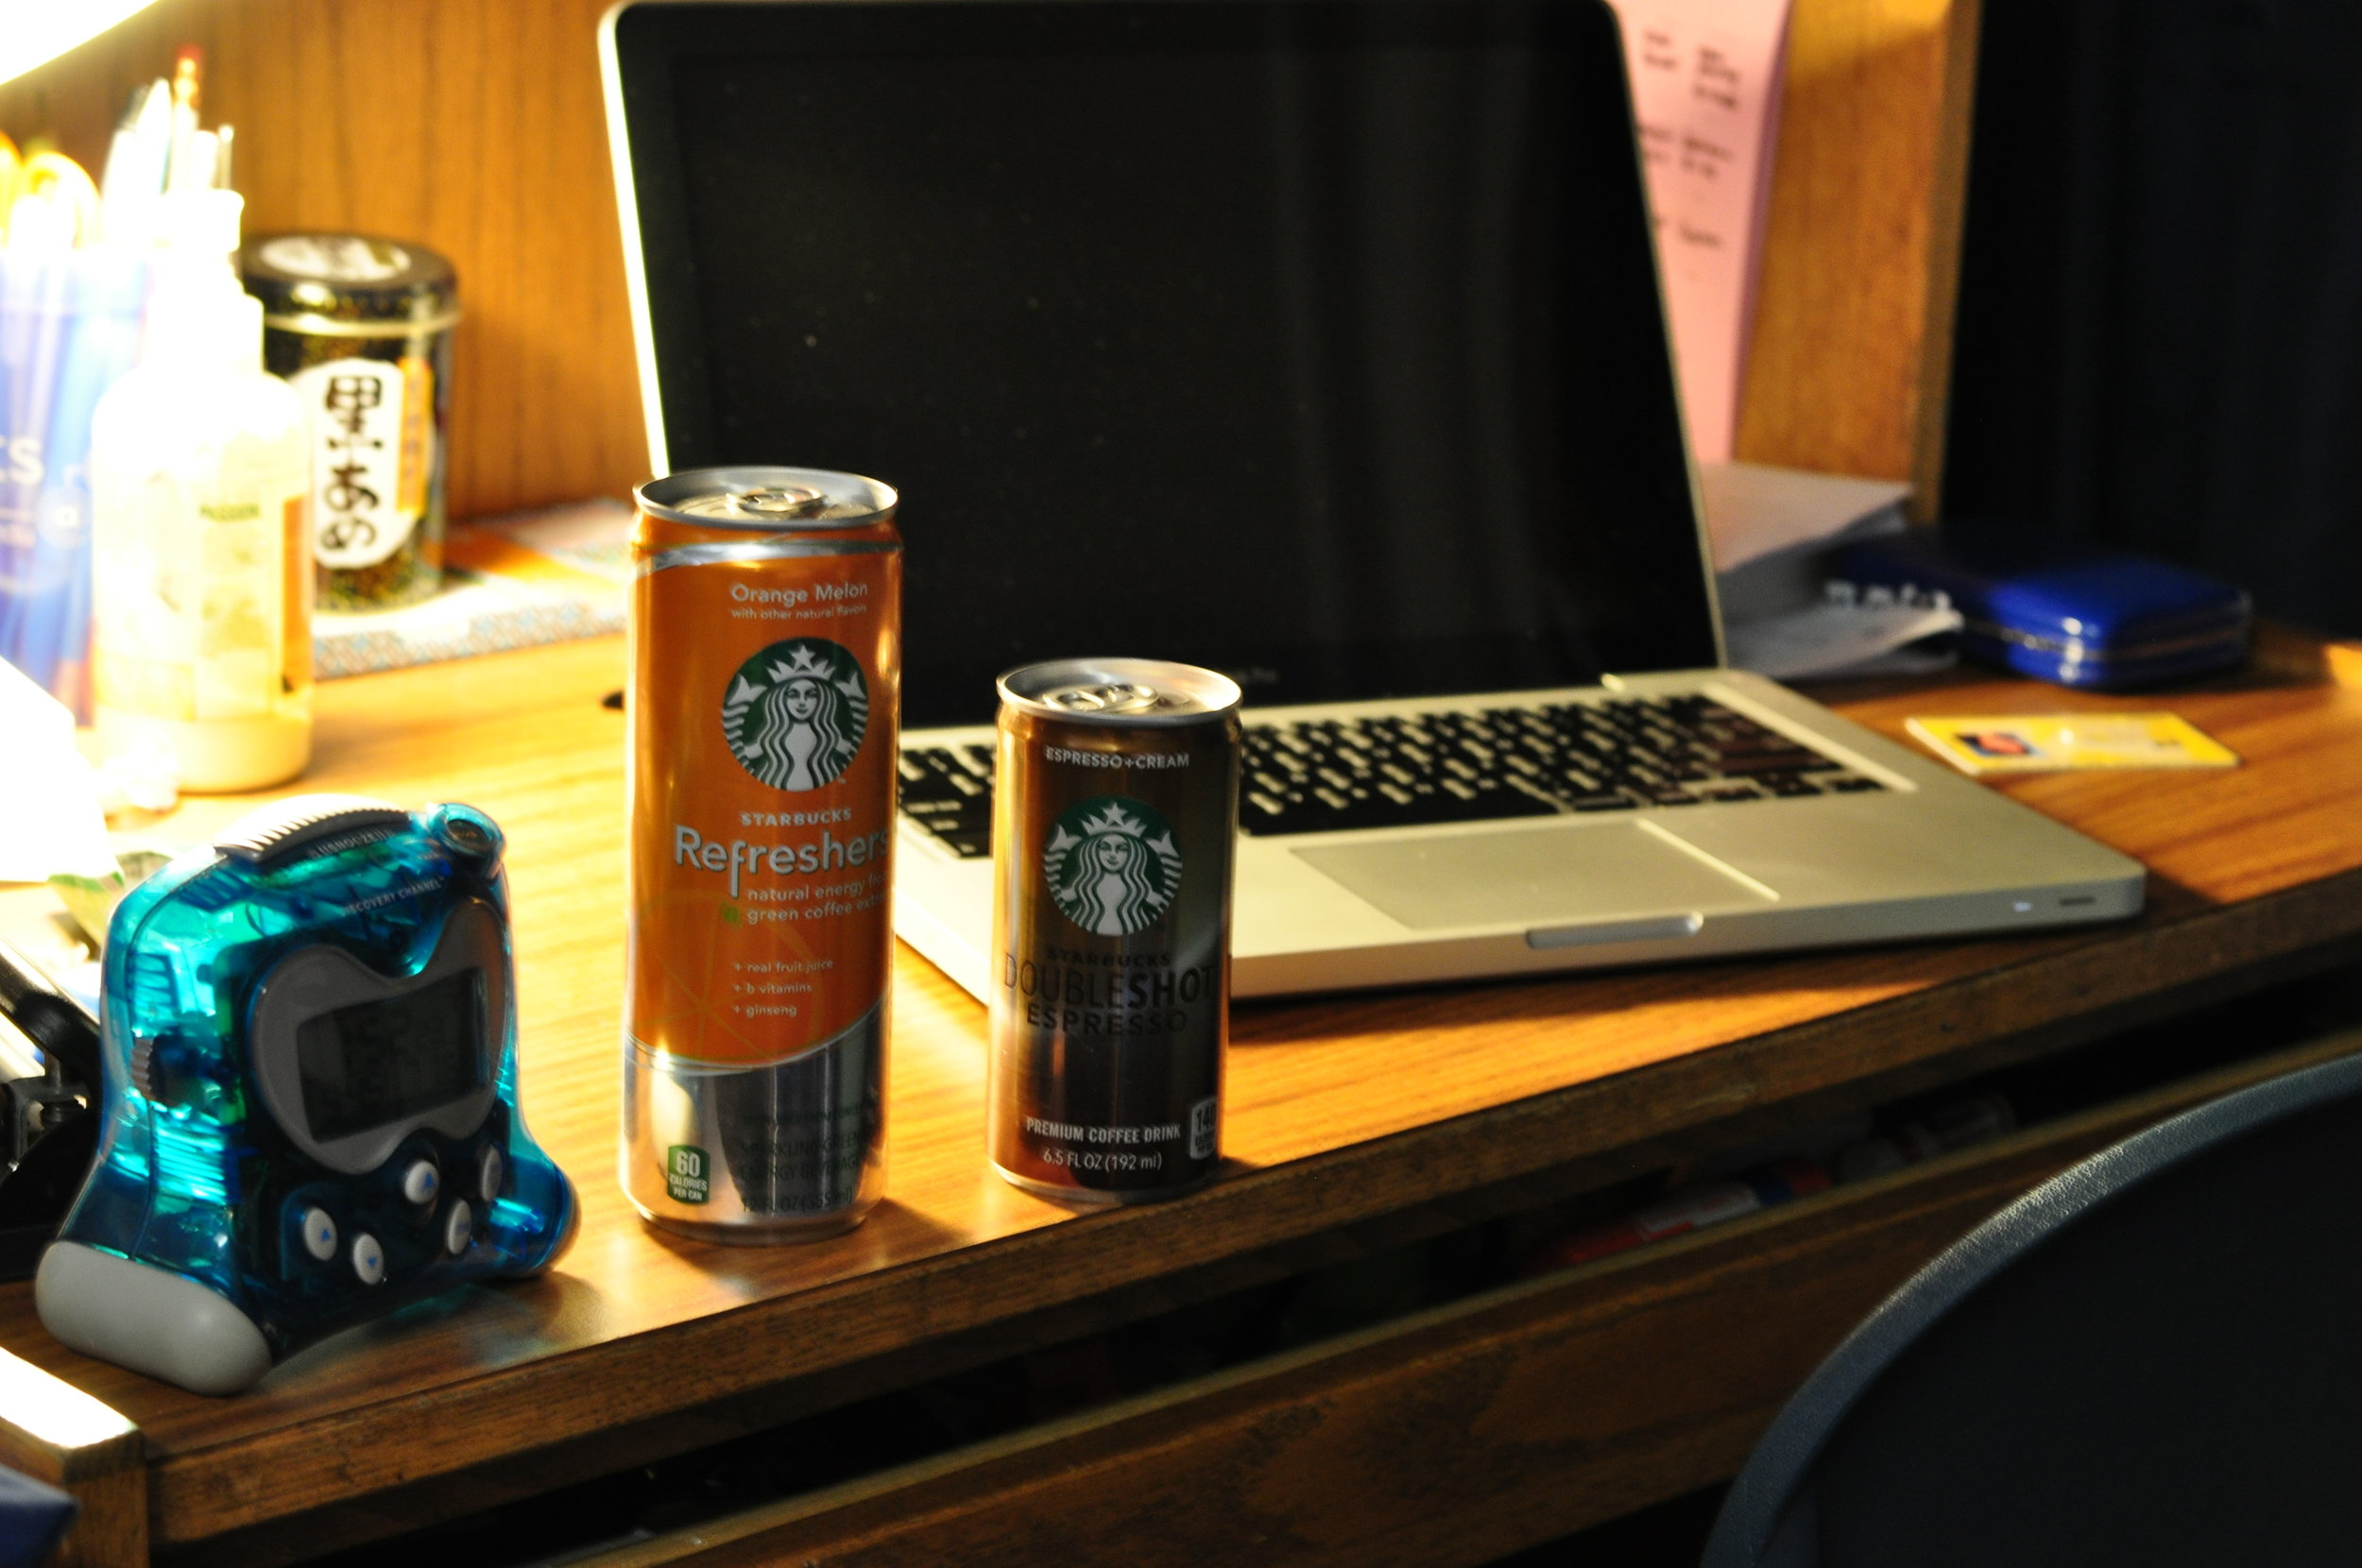 The crunch of finals--two turbo loaded Starbuck's drinks.